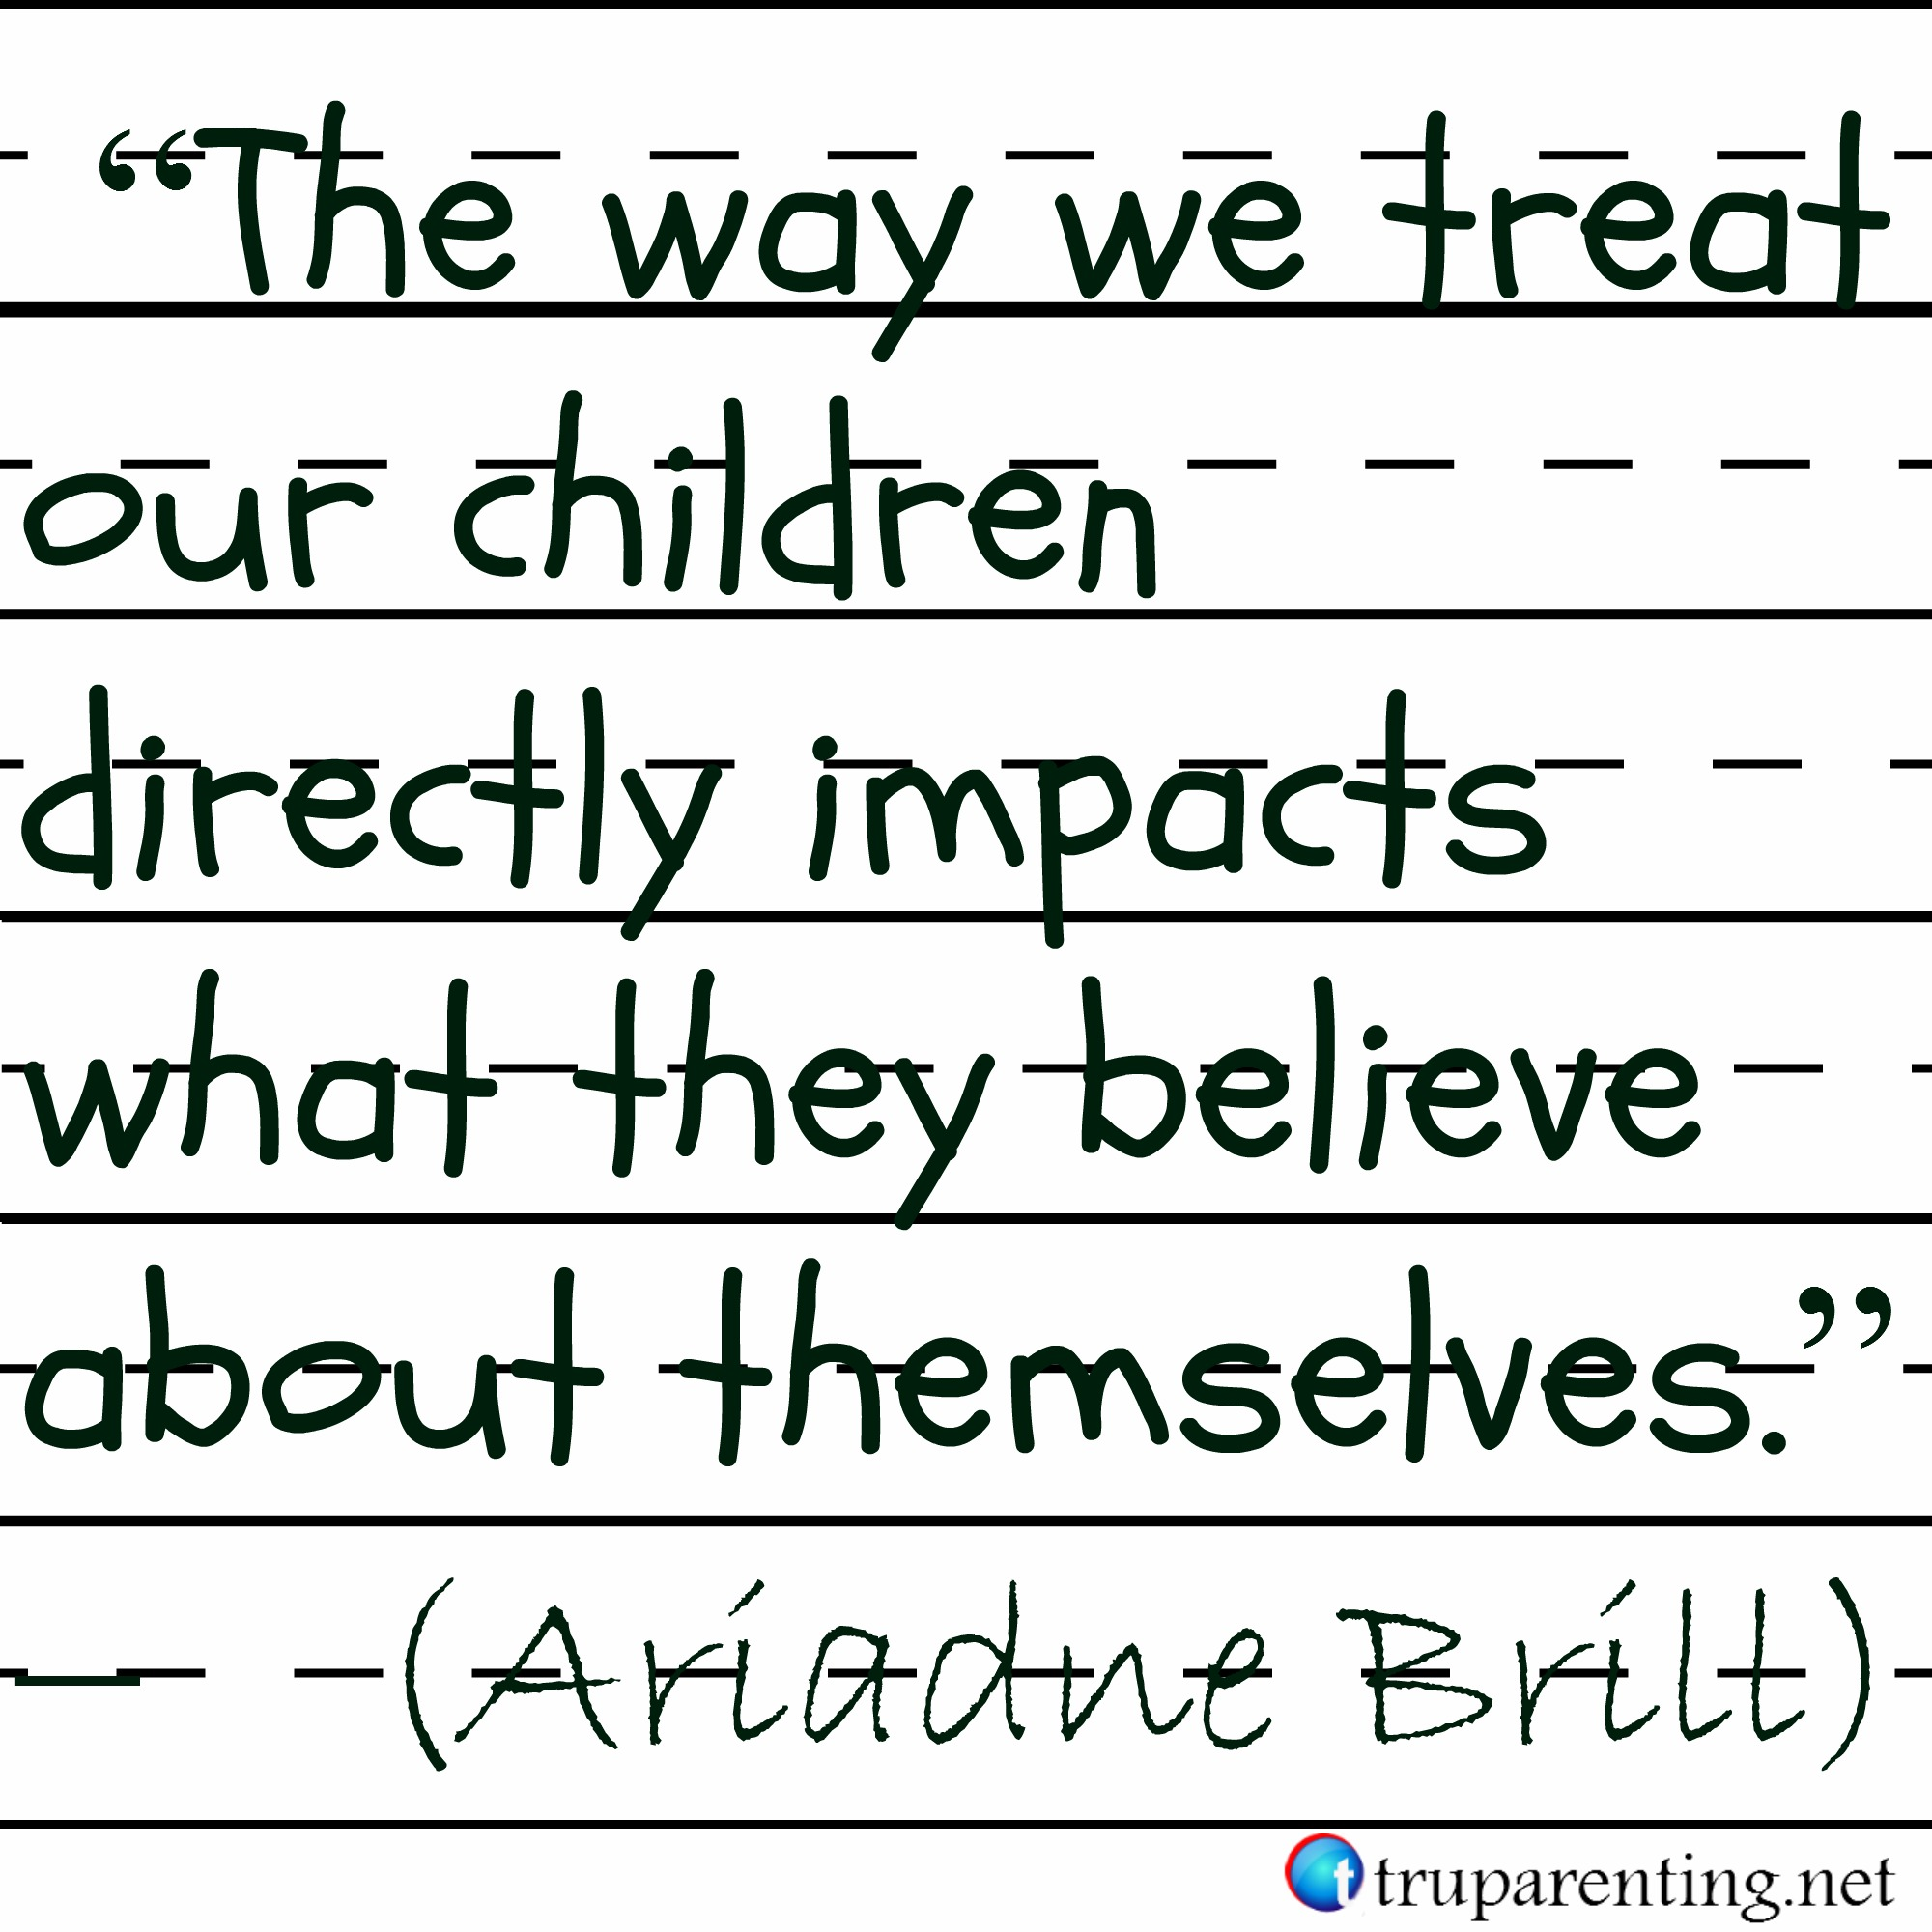 Quotes About Parenting 30 Inspiring Parenting Quotes That Teach Tru Parenting Principles